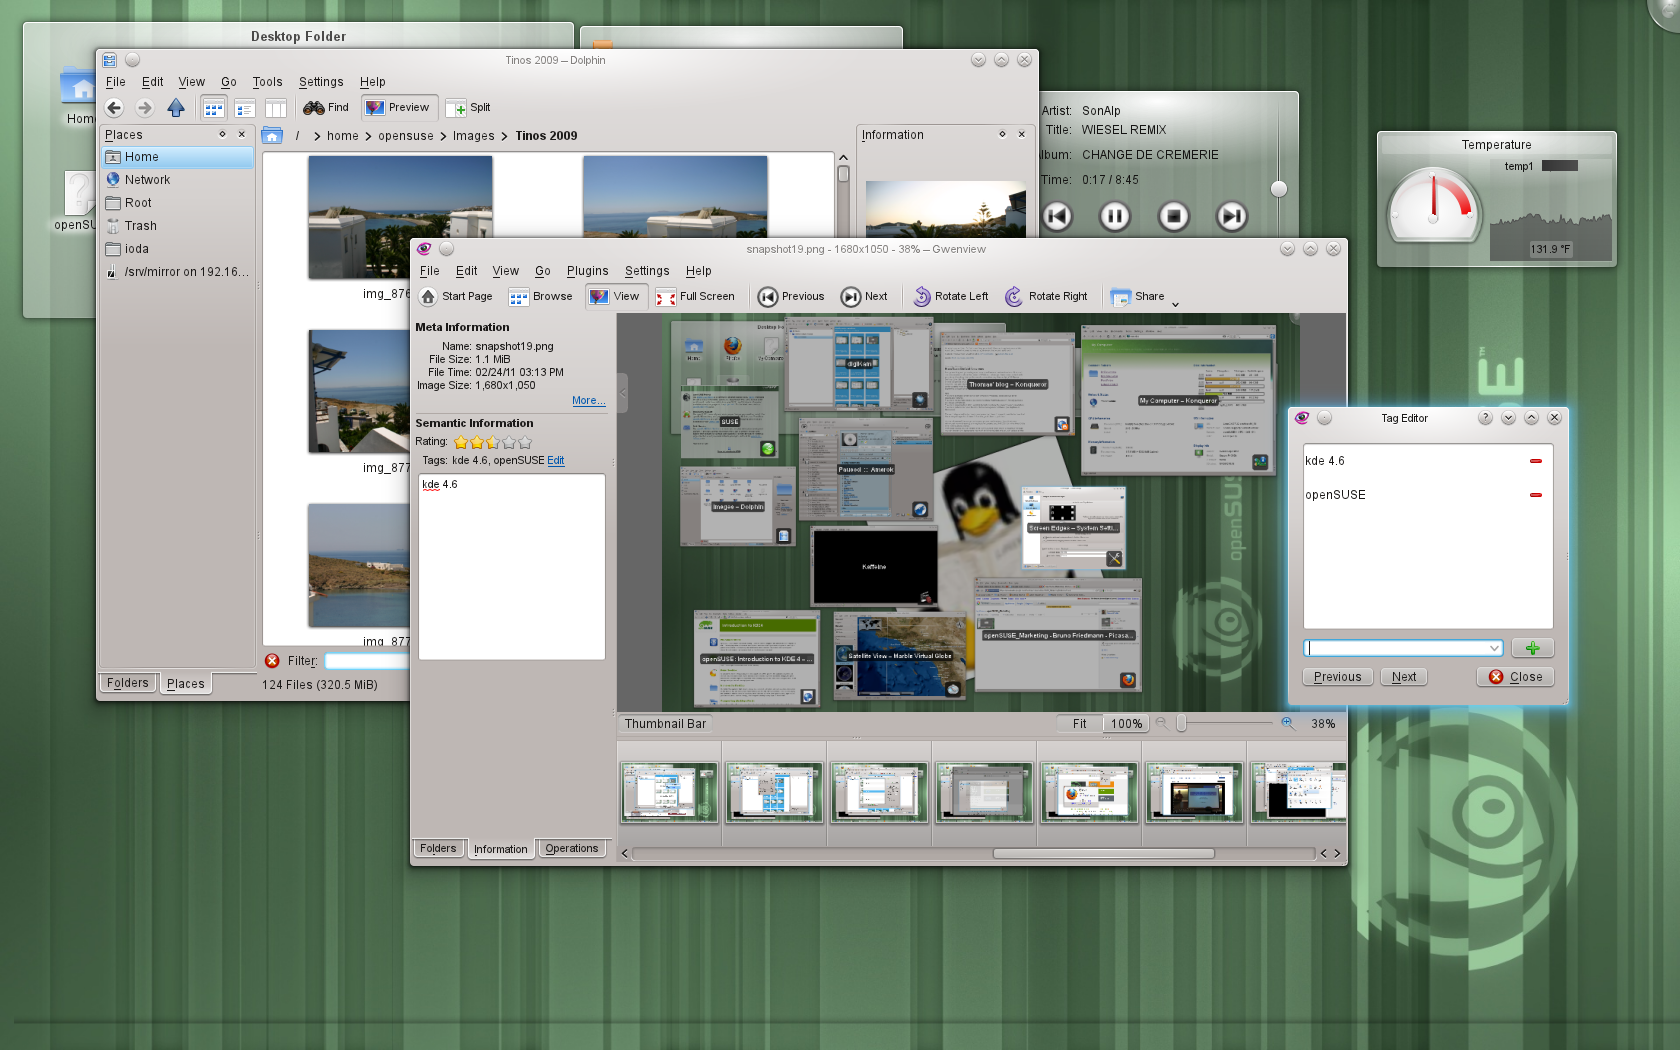 openSUSE KDE desktop with Dolphin and Gwenview